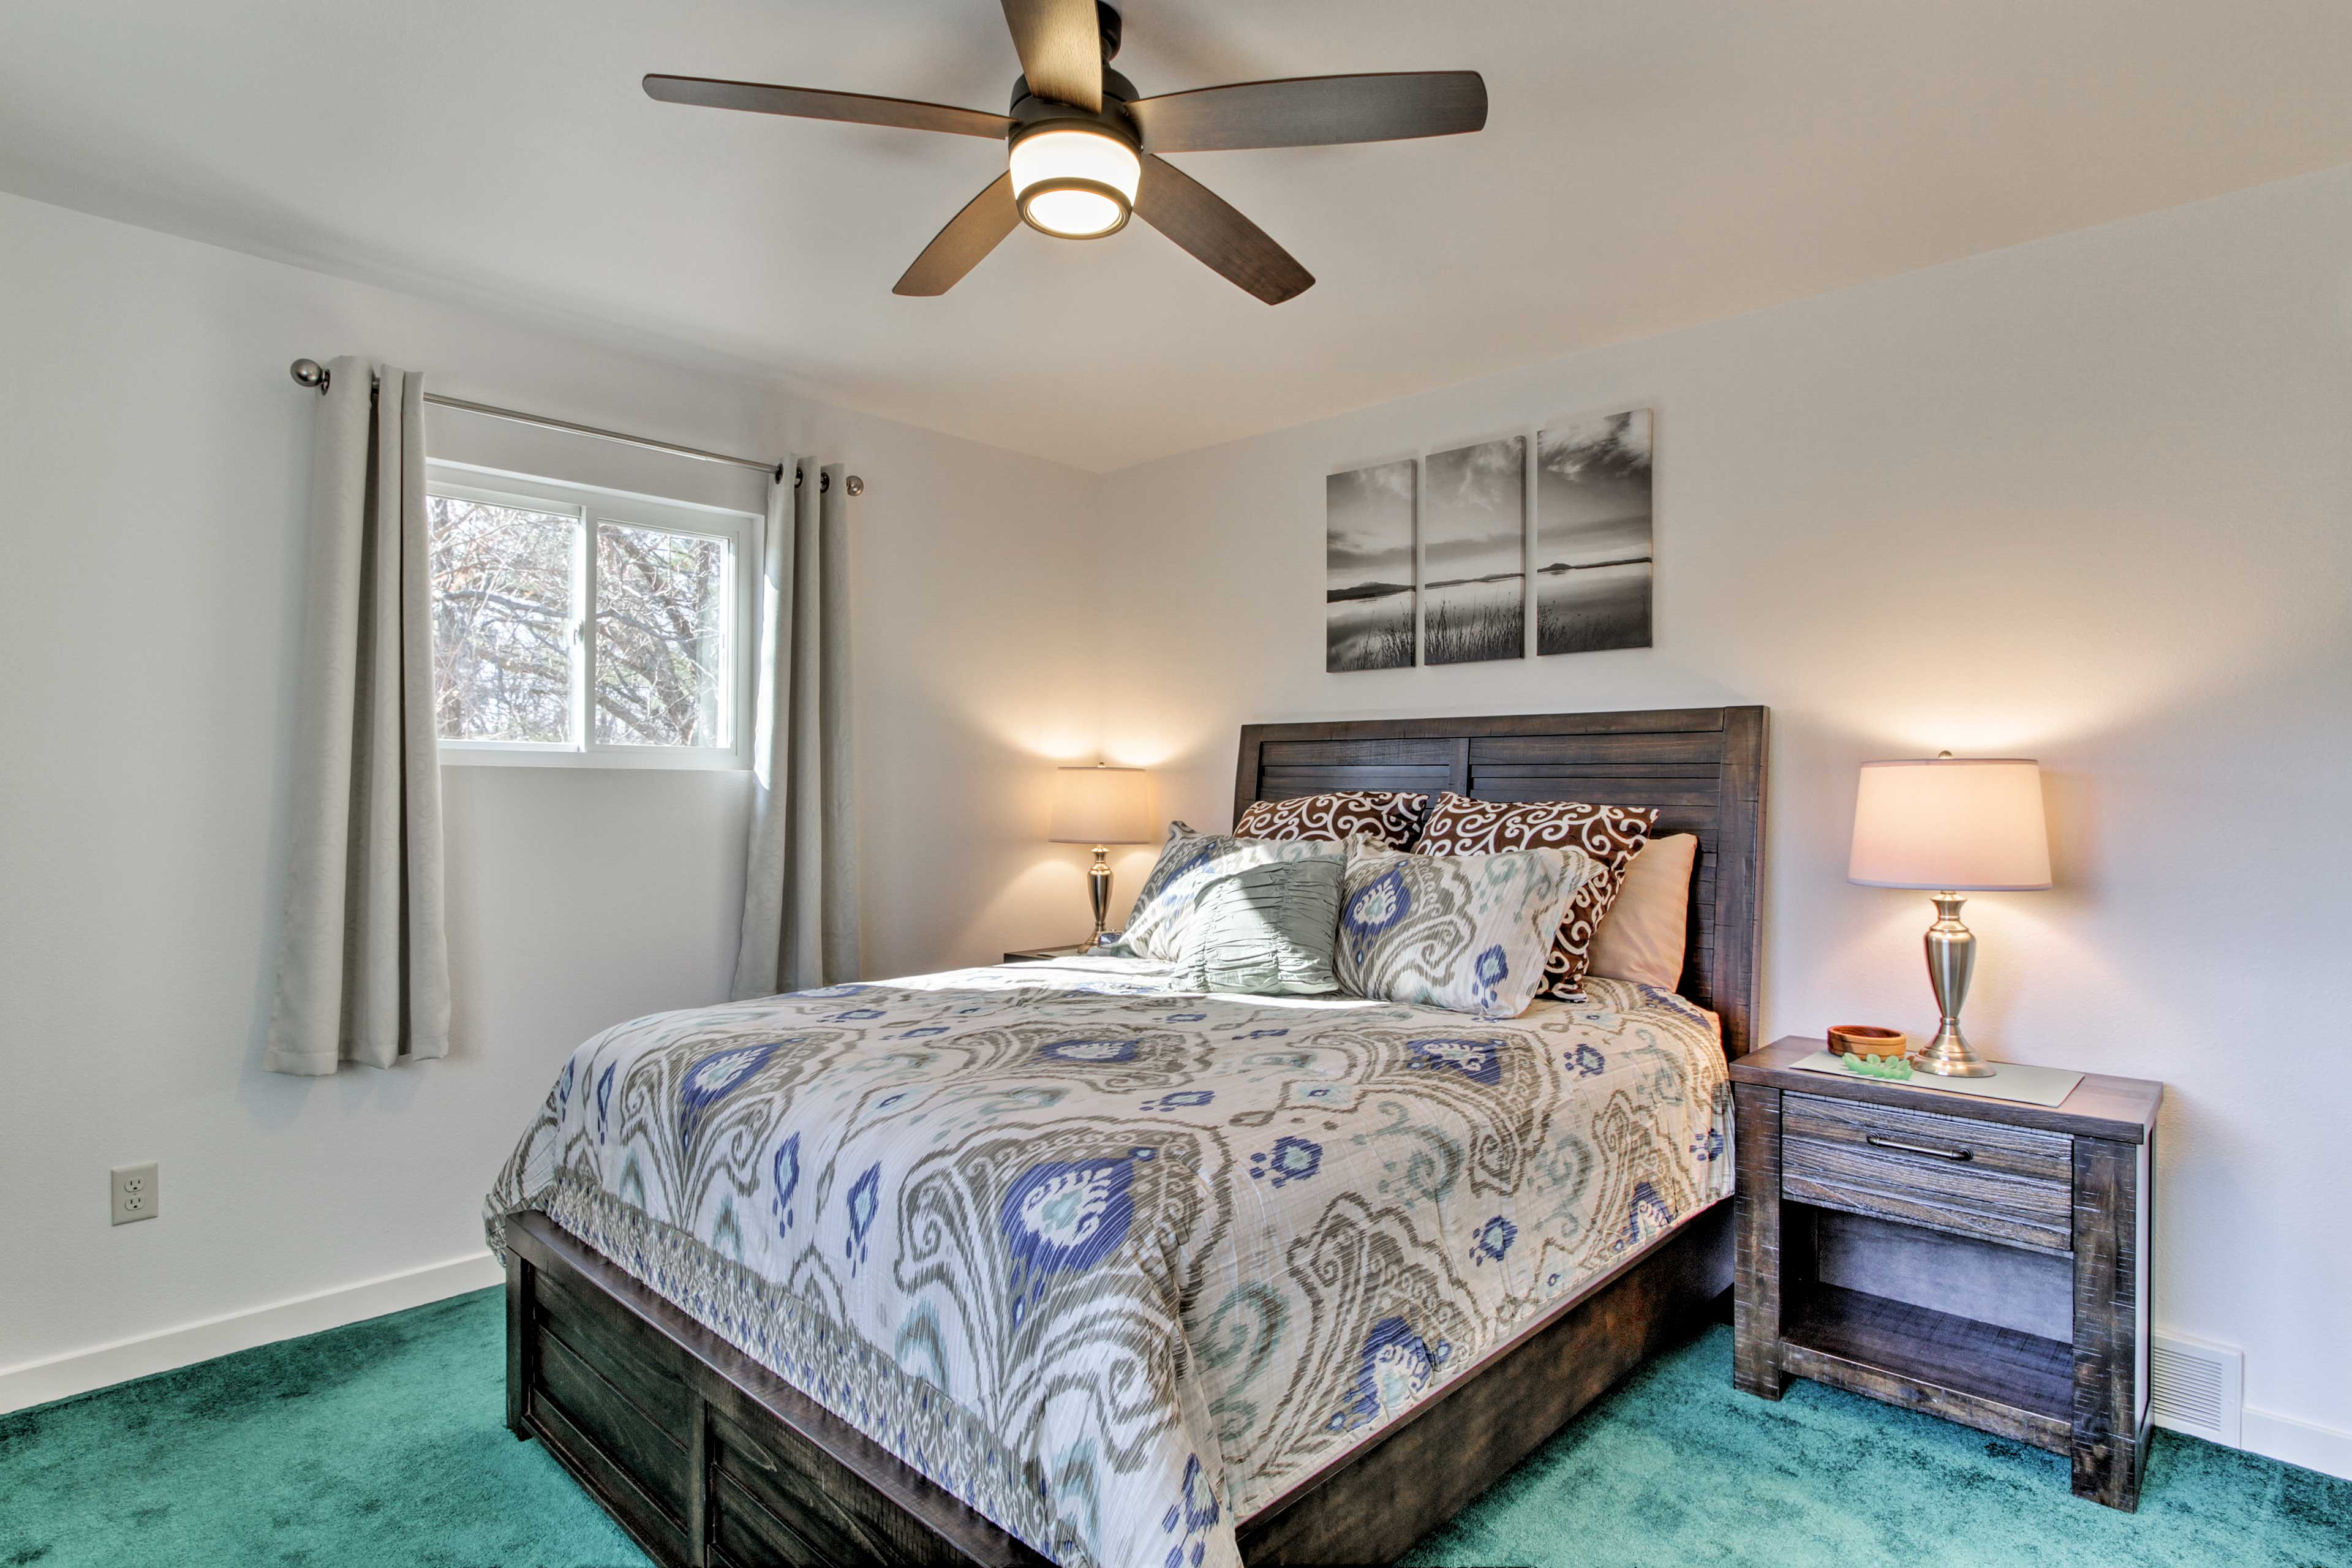 Two guests can share the comfort of this full-sized bed.